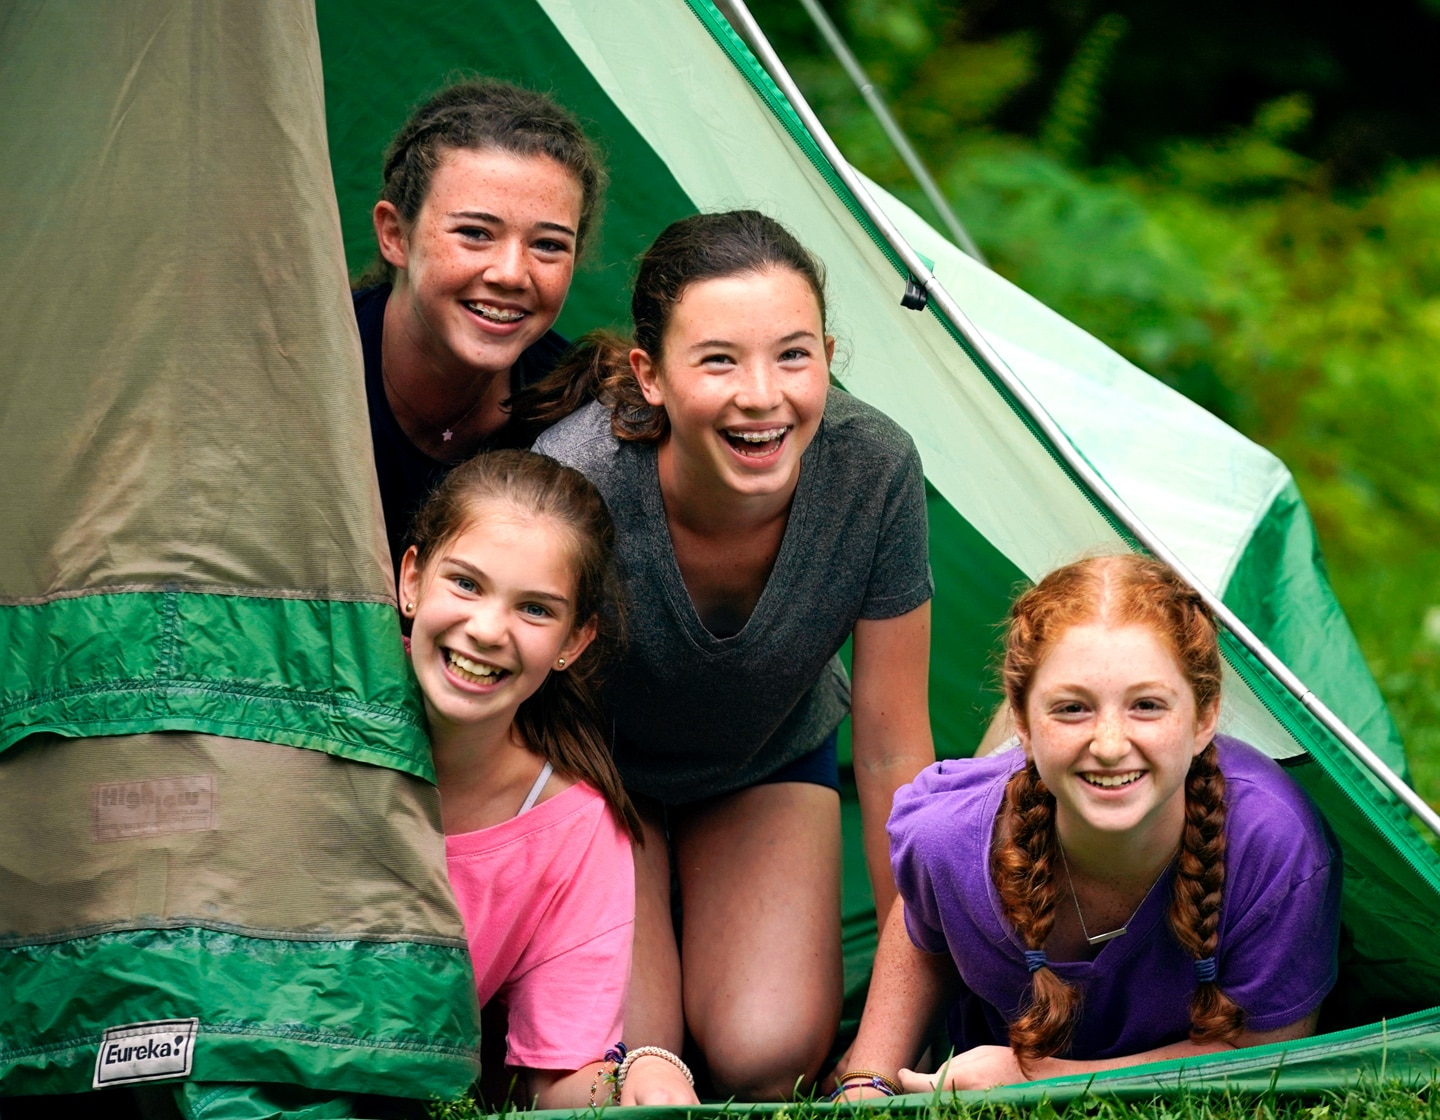 four girls peaking out of a green tent smiling